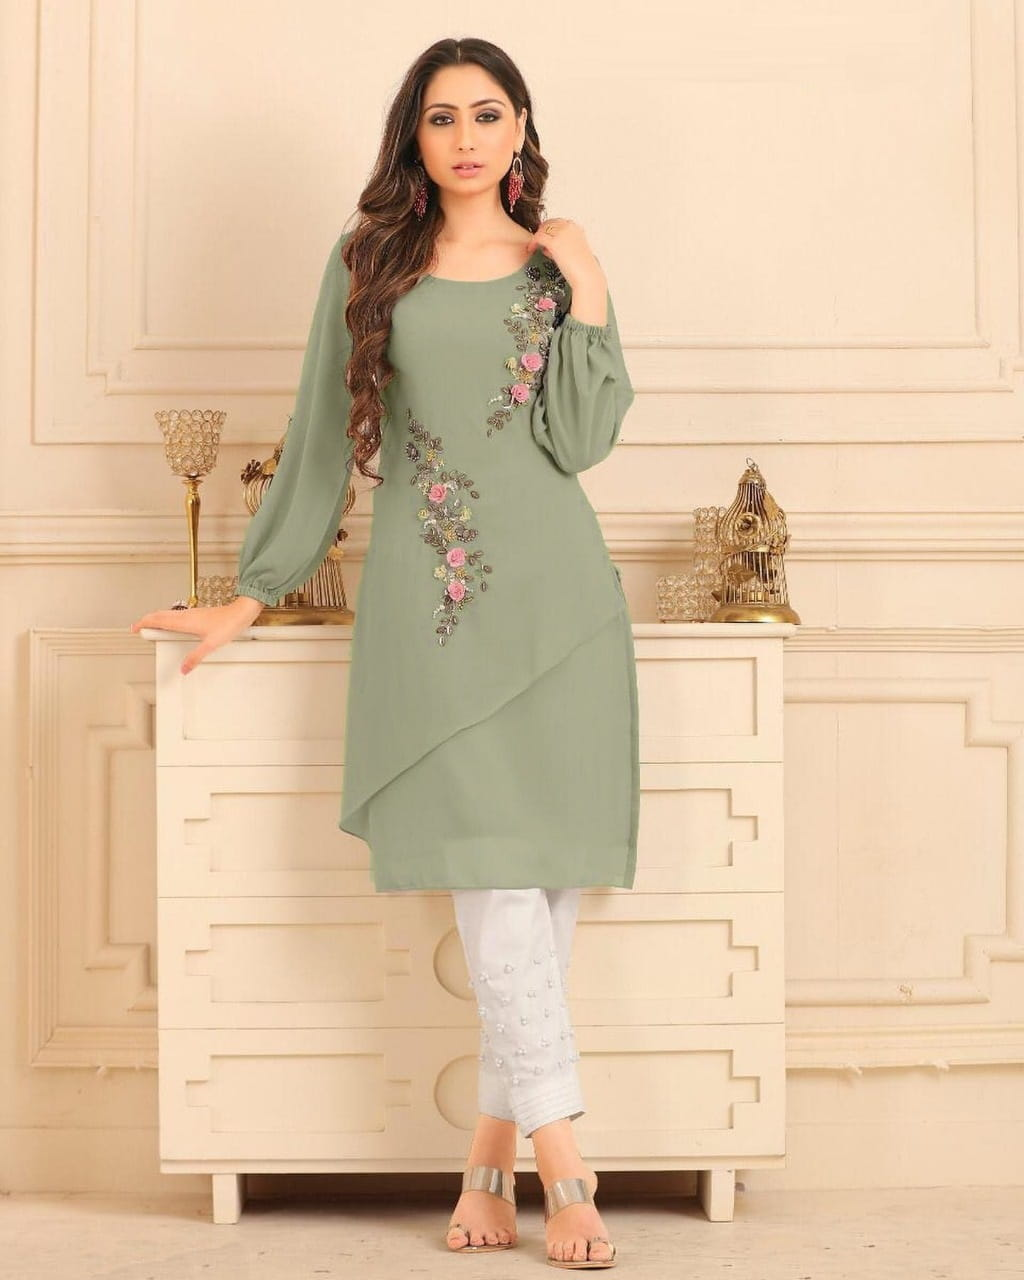 Light Green Color Straight cut Tunic with overall pearl work with Glamours Sleeves Pair with Cigarette Pants